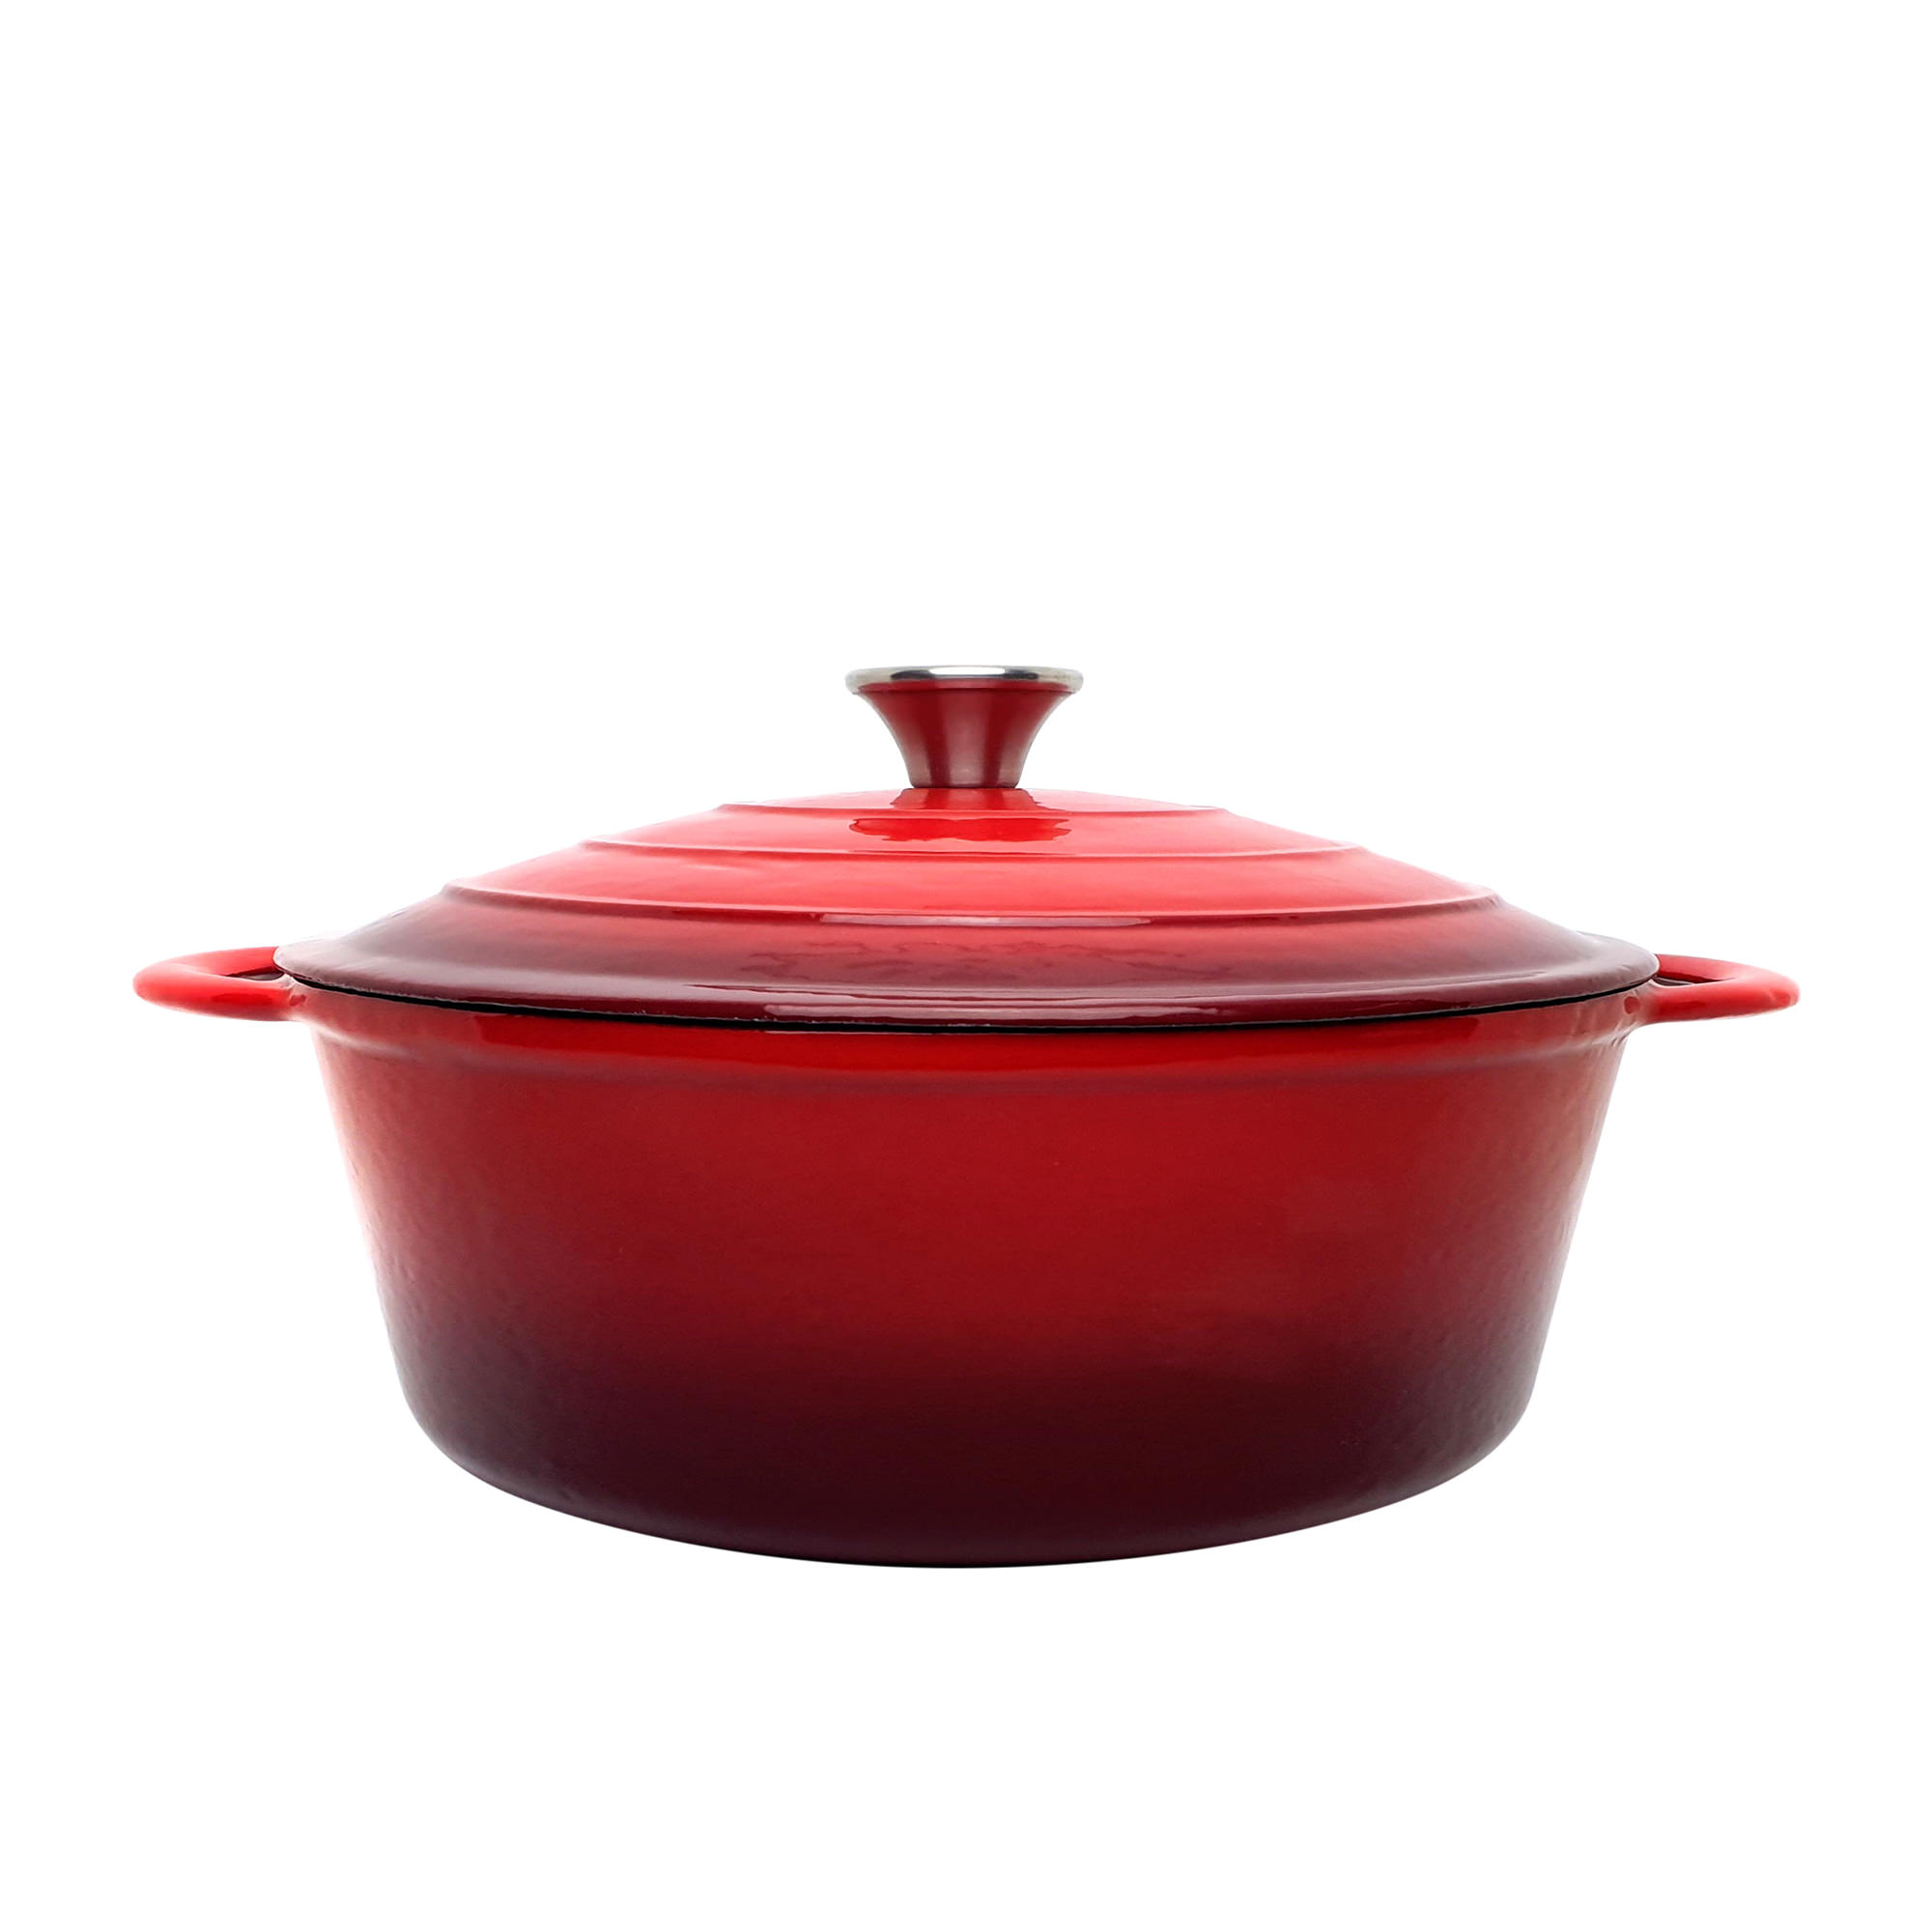 Classica Round Enamelled Cast Iron Dutch Oven 28cm - 6.6L Red